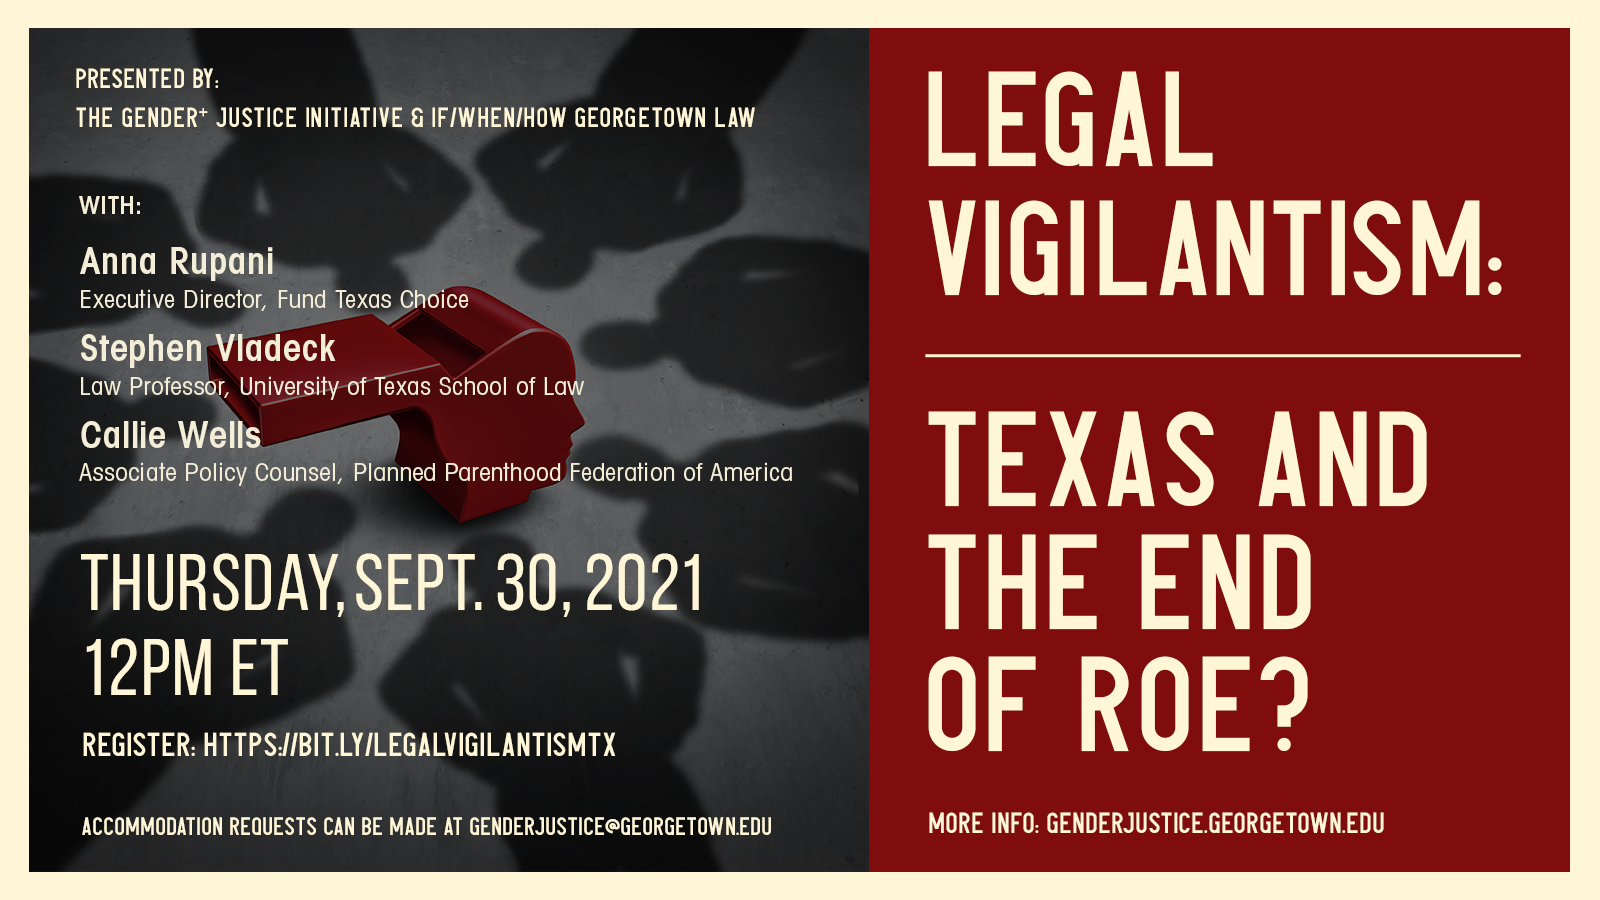 Flyer Event Legal Vigilantism: Texas and the End of Roe